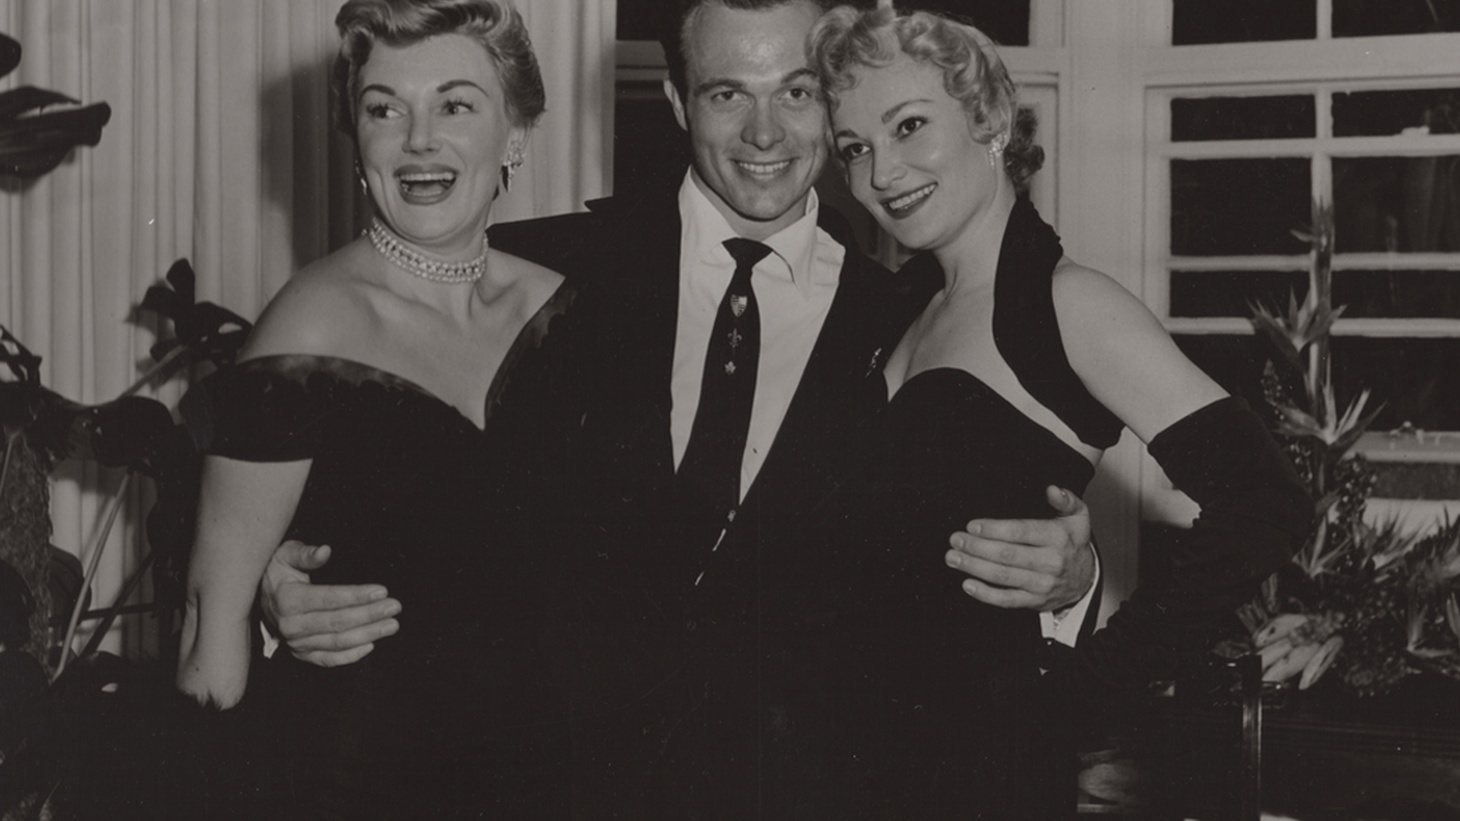 A new documentary explores the incredible life of 95-year-old Scotty Bowers--a prolific pansexual pimp to the stars. Bowers says he set up liaisons for celebrities from Cary Grant to Rock Hudson to J.